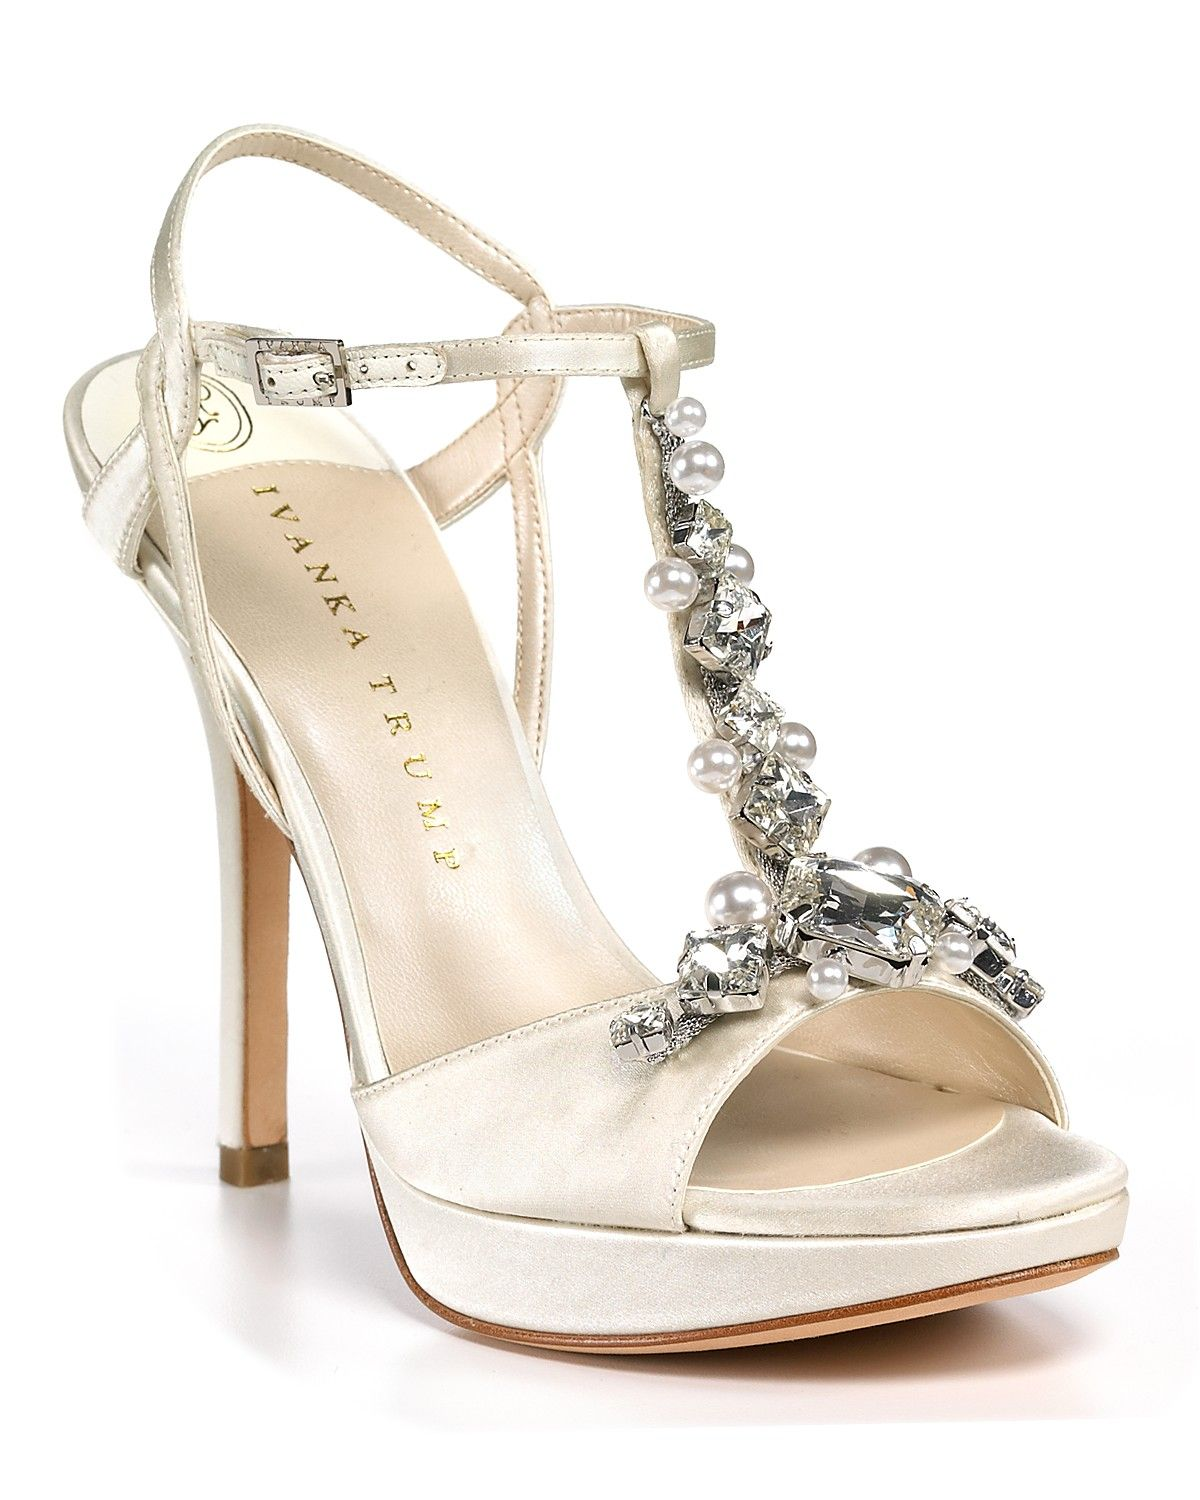 Ivanka Trump Alluvia Evening Sandals Shoes Sandals Bloomingdale S Strappy Wedding Shoes Evening Sandals Evening Shoes